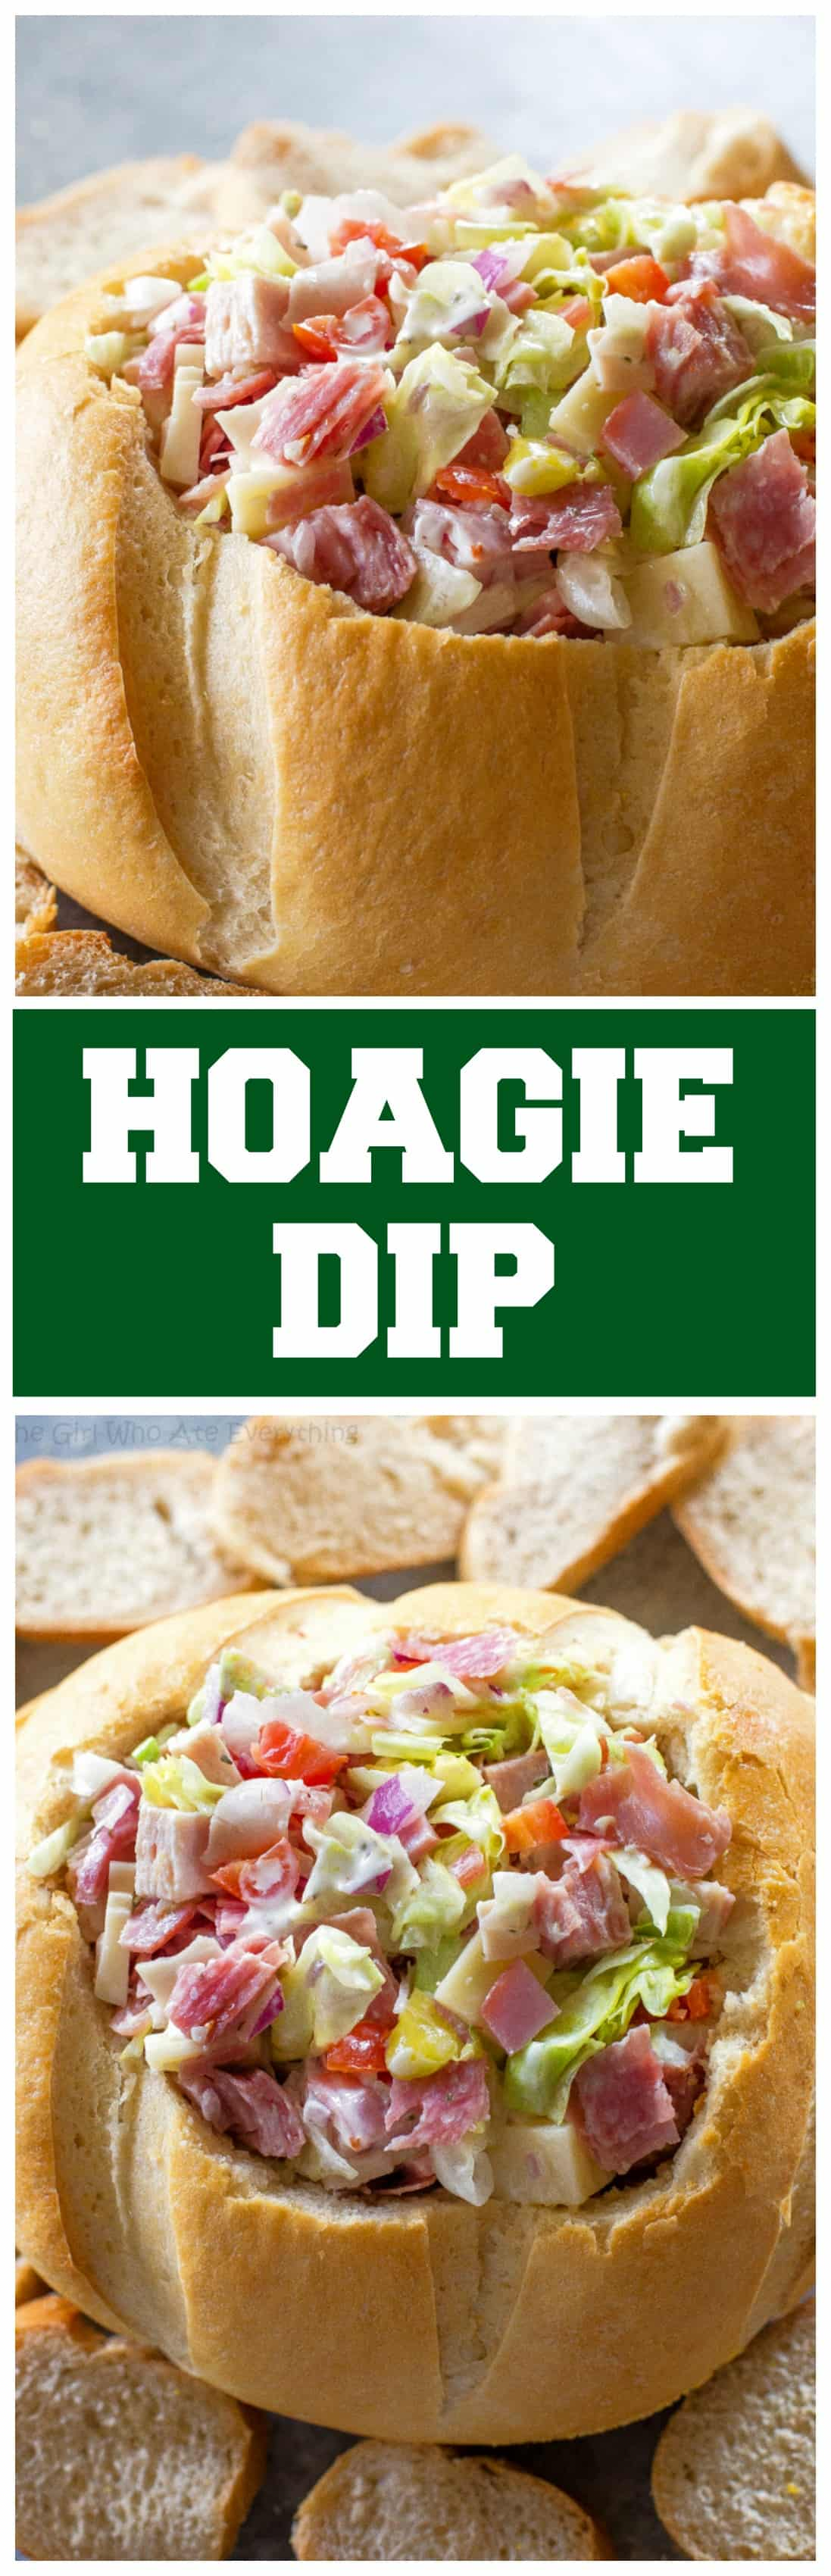 This Hoagie Dip recipe tastes just like a sub sandwich from Subway but in dip form. This appetizer should really be called Hoagie Spread because the best way to eat it is to spoon it on top of slices of bread. #appetizer #hoagie #bread #dip #subway #sandwich